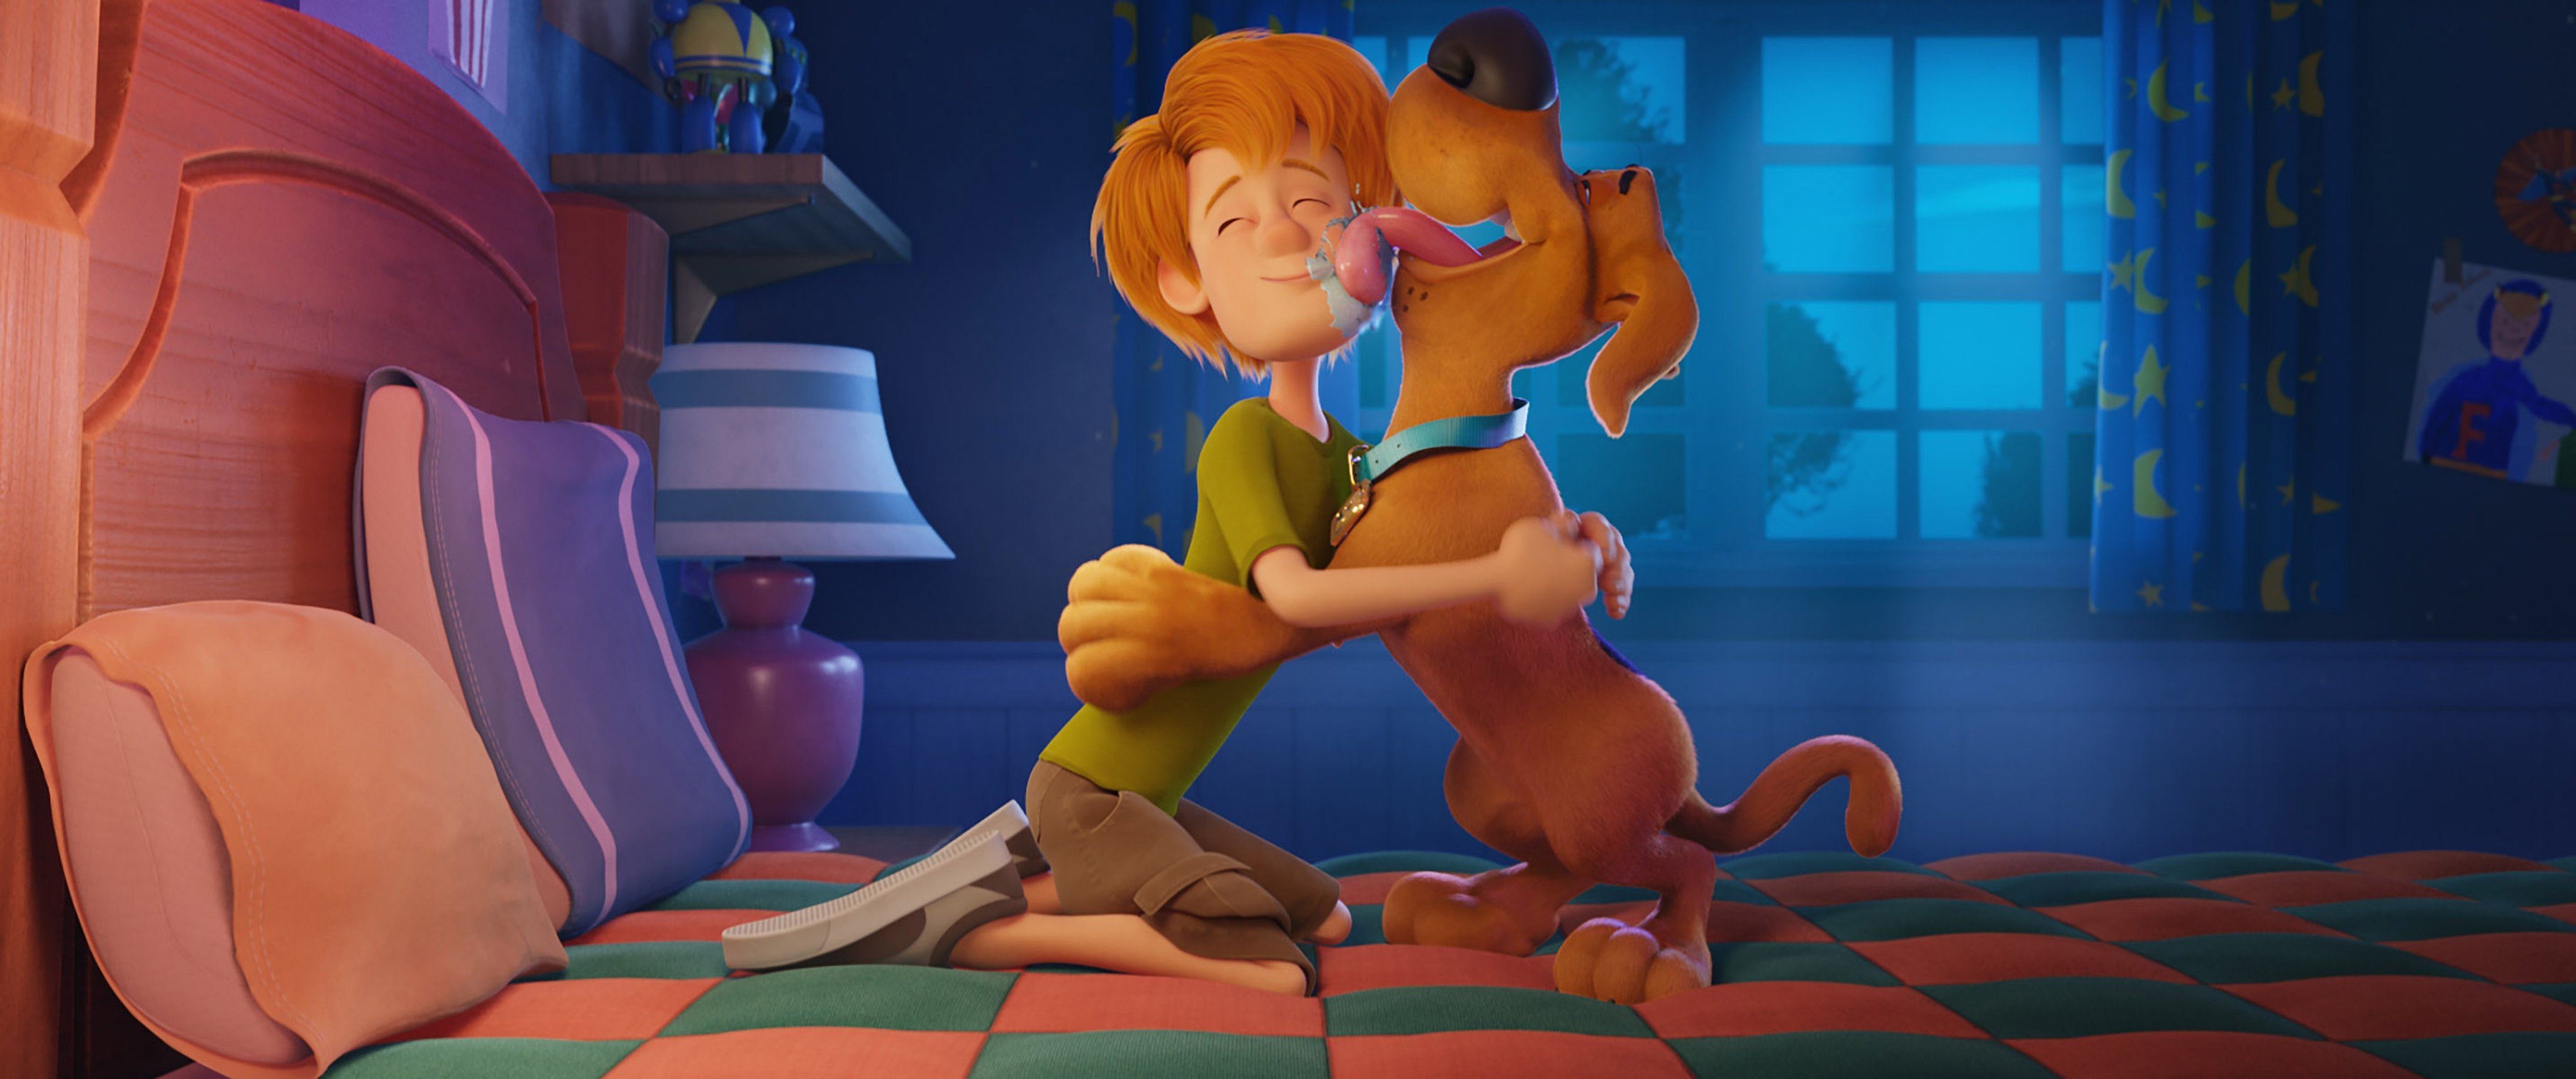 4 - The Reboot of Scooby-Doo in 3D is Coming! - Images, Trailer and Debut Details Revealed